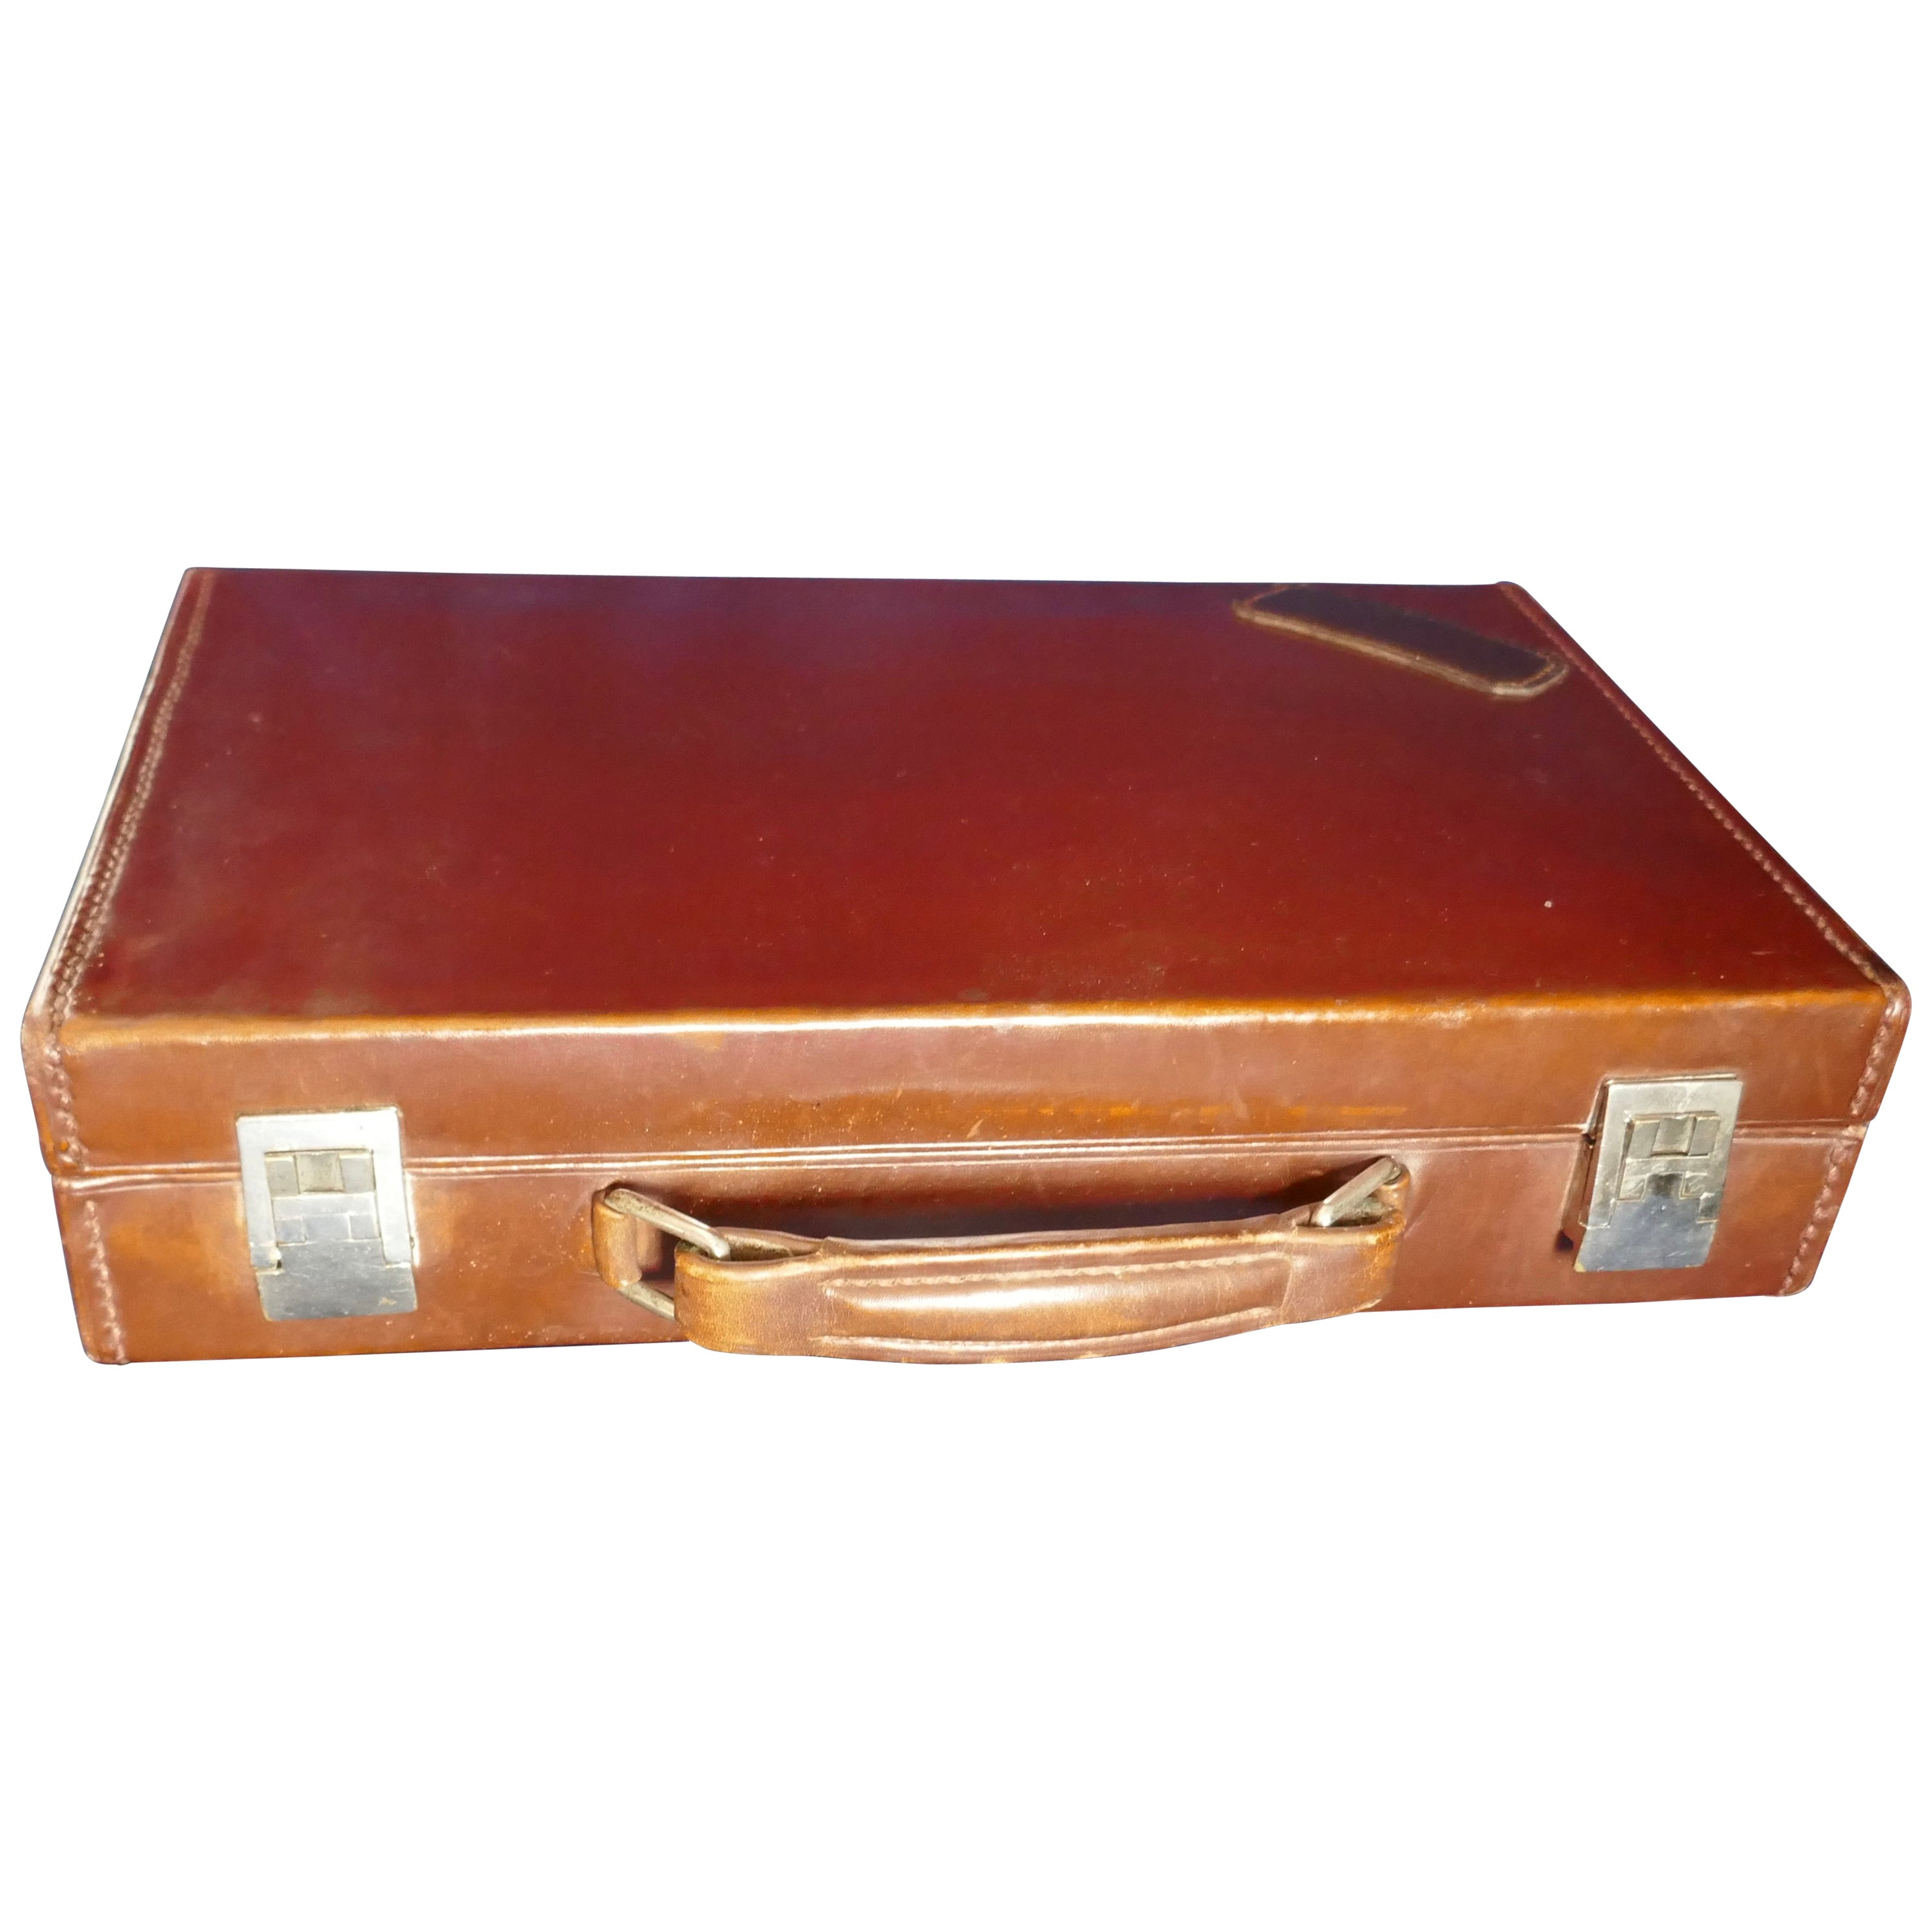 Vintage Art Deco Hermes Fitted Gentlemans Travelling Grooming Case